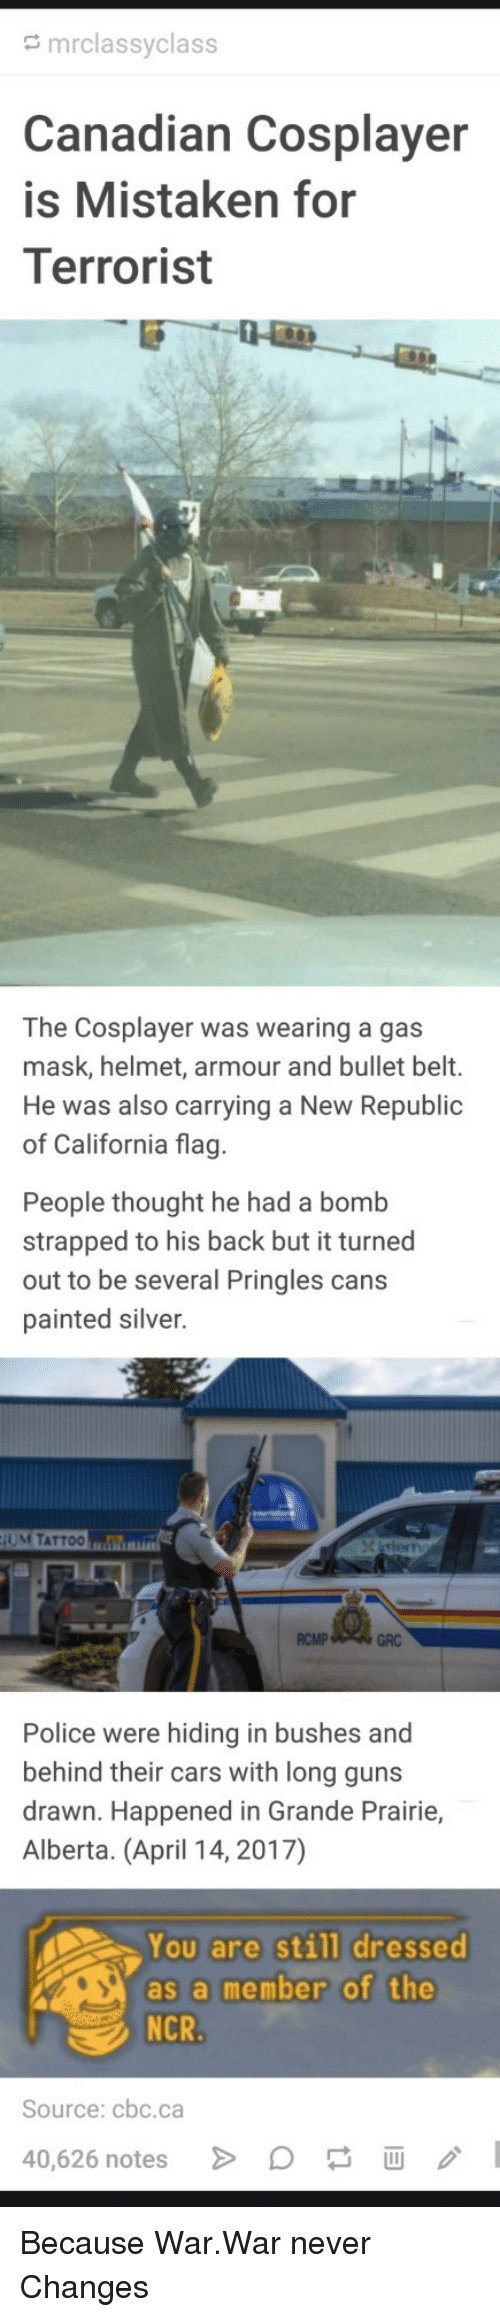 Cars, Guns, and Police: mrclassyclass  anadian Cosplayer  is Mistaken for  Terrorist  The Cosplayer was wearing a gas  mask, helmet, armour and bullet belt.  He was also carrying a New Republic  of California flag  People thought he had a bomb  strapped to his back but it turned  out to be several Pringles cans  painted silver.  UM TATTOO  RCMP  GRC  Police were hiding in bushes and  behind their cars with long guns  drawn. Happened in Grande Prairie,  Alberta. (April 14, 2017)  You are still dressed  as a member of the  Source: cbc.ca  40,626 notes Because War.War never Changes